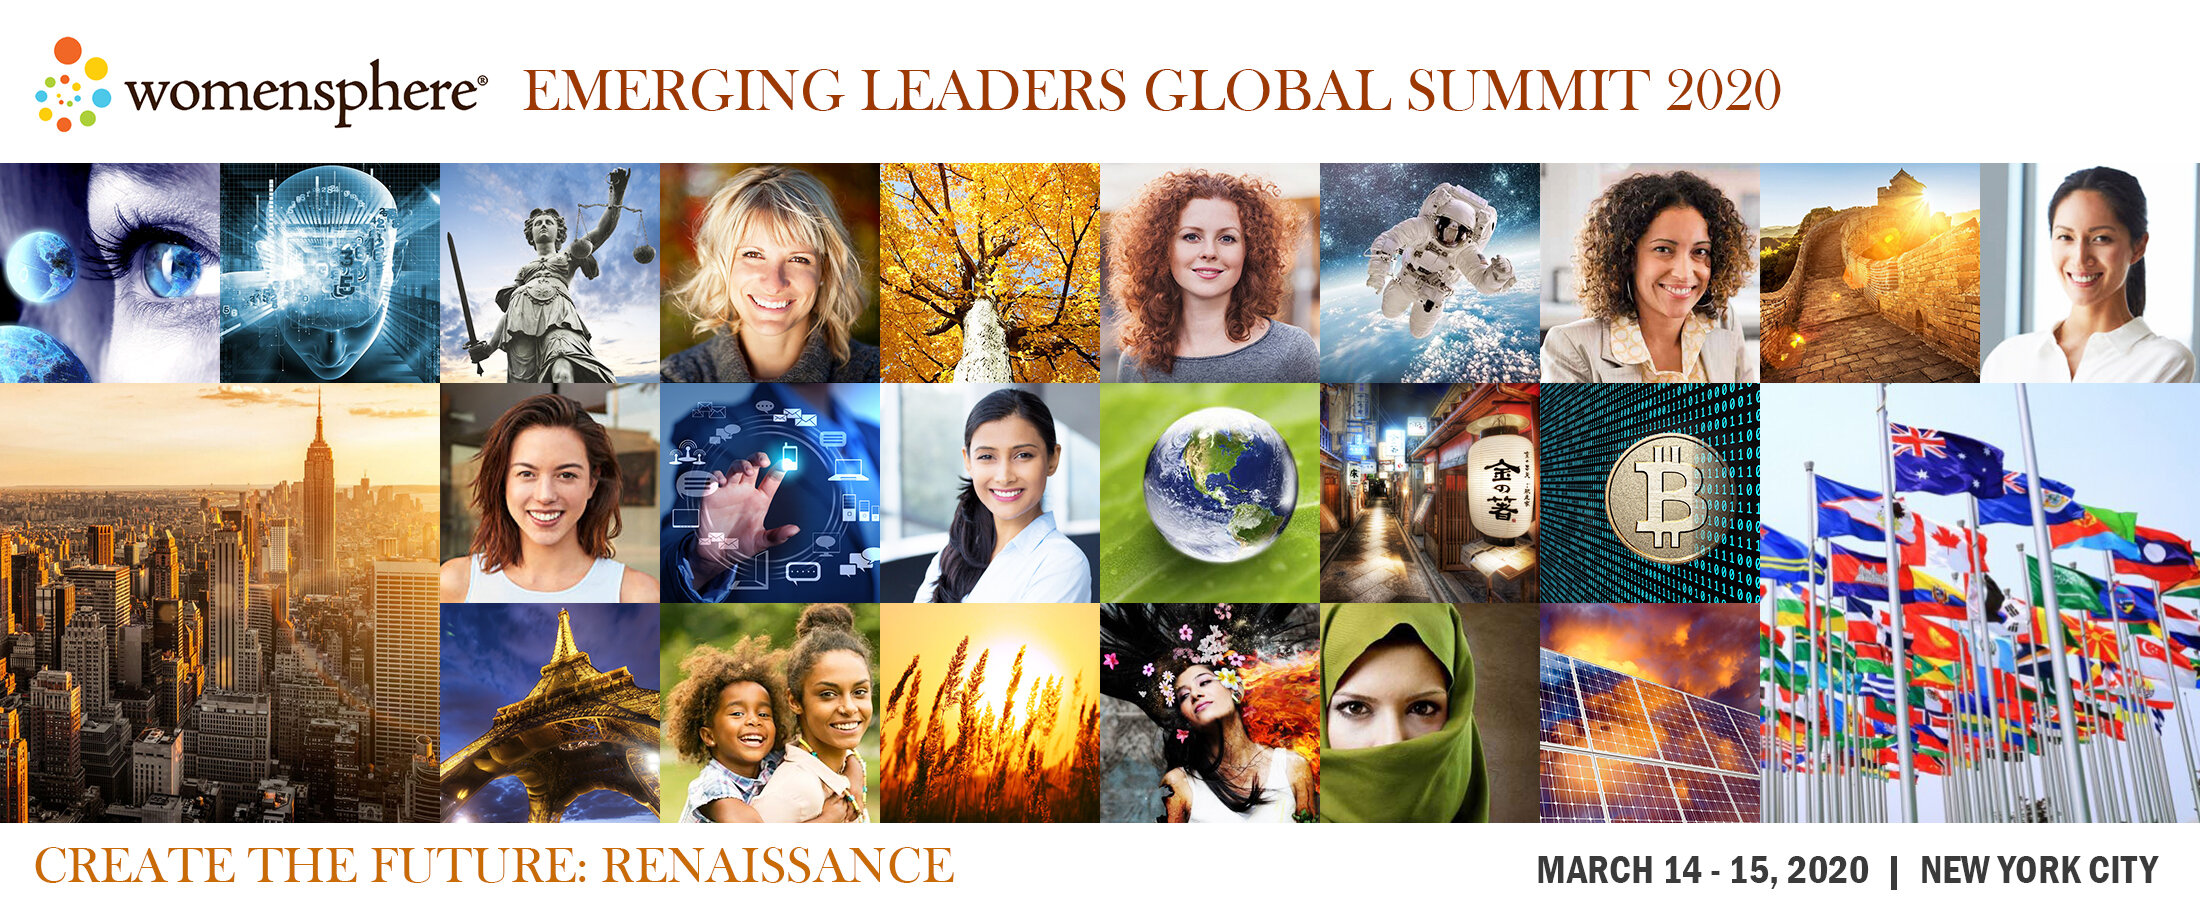 Womensphere Emerging Leaders Global Summit 2020 Banner.jpg